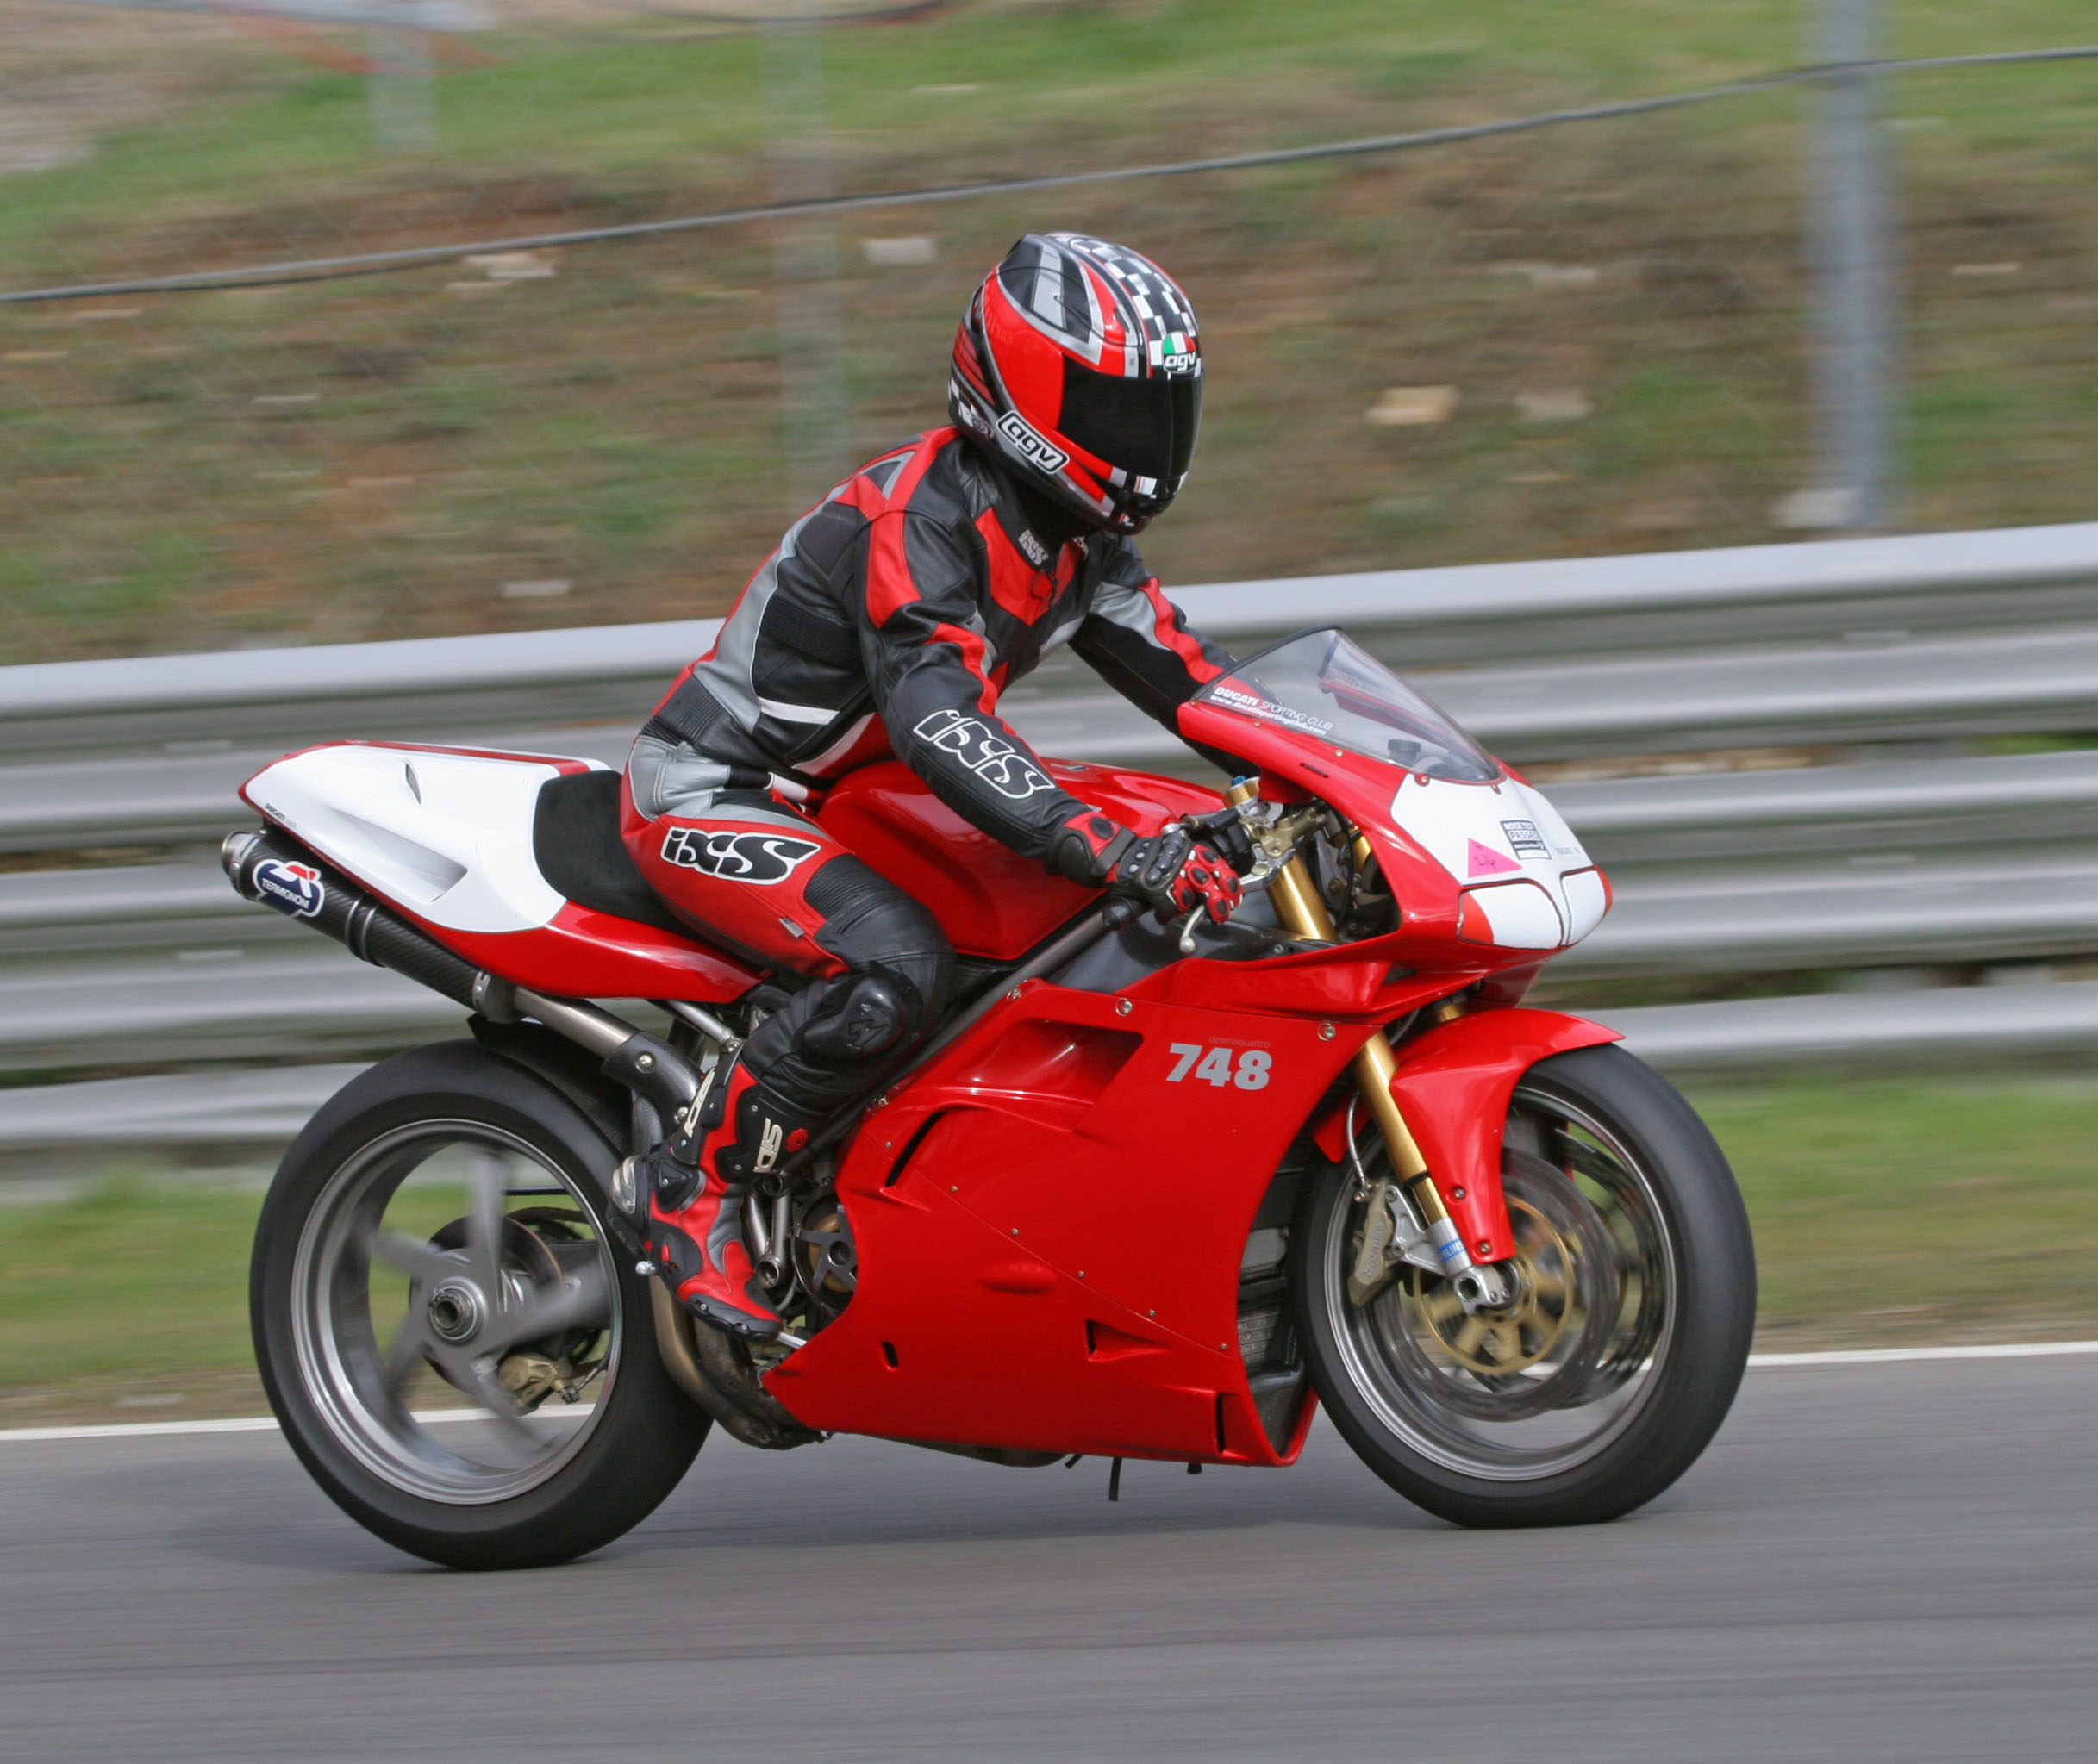 Ducati  Engine Rebuild Cost Broken Timing Belt